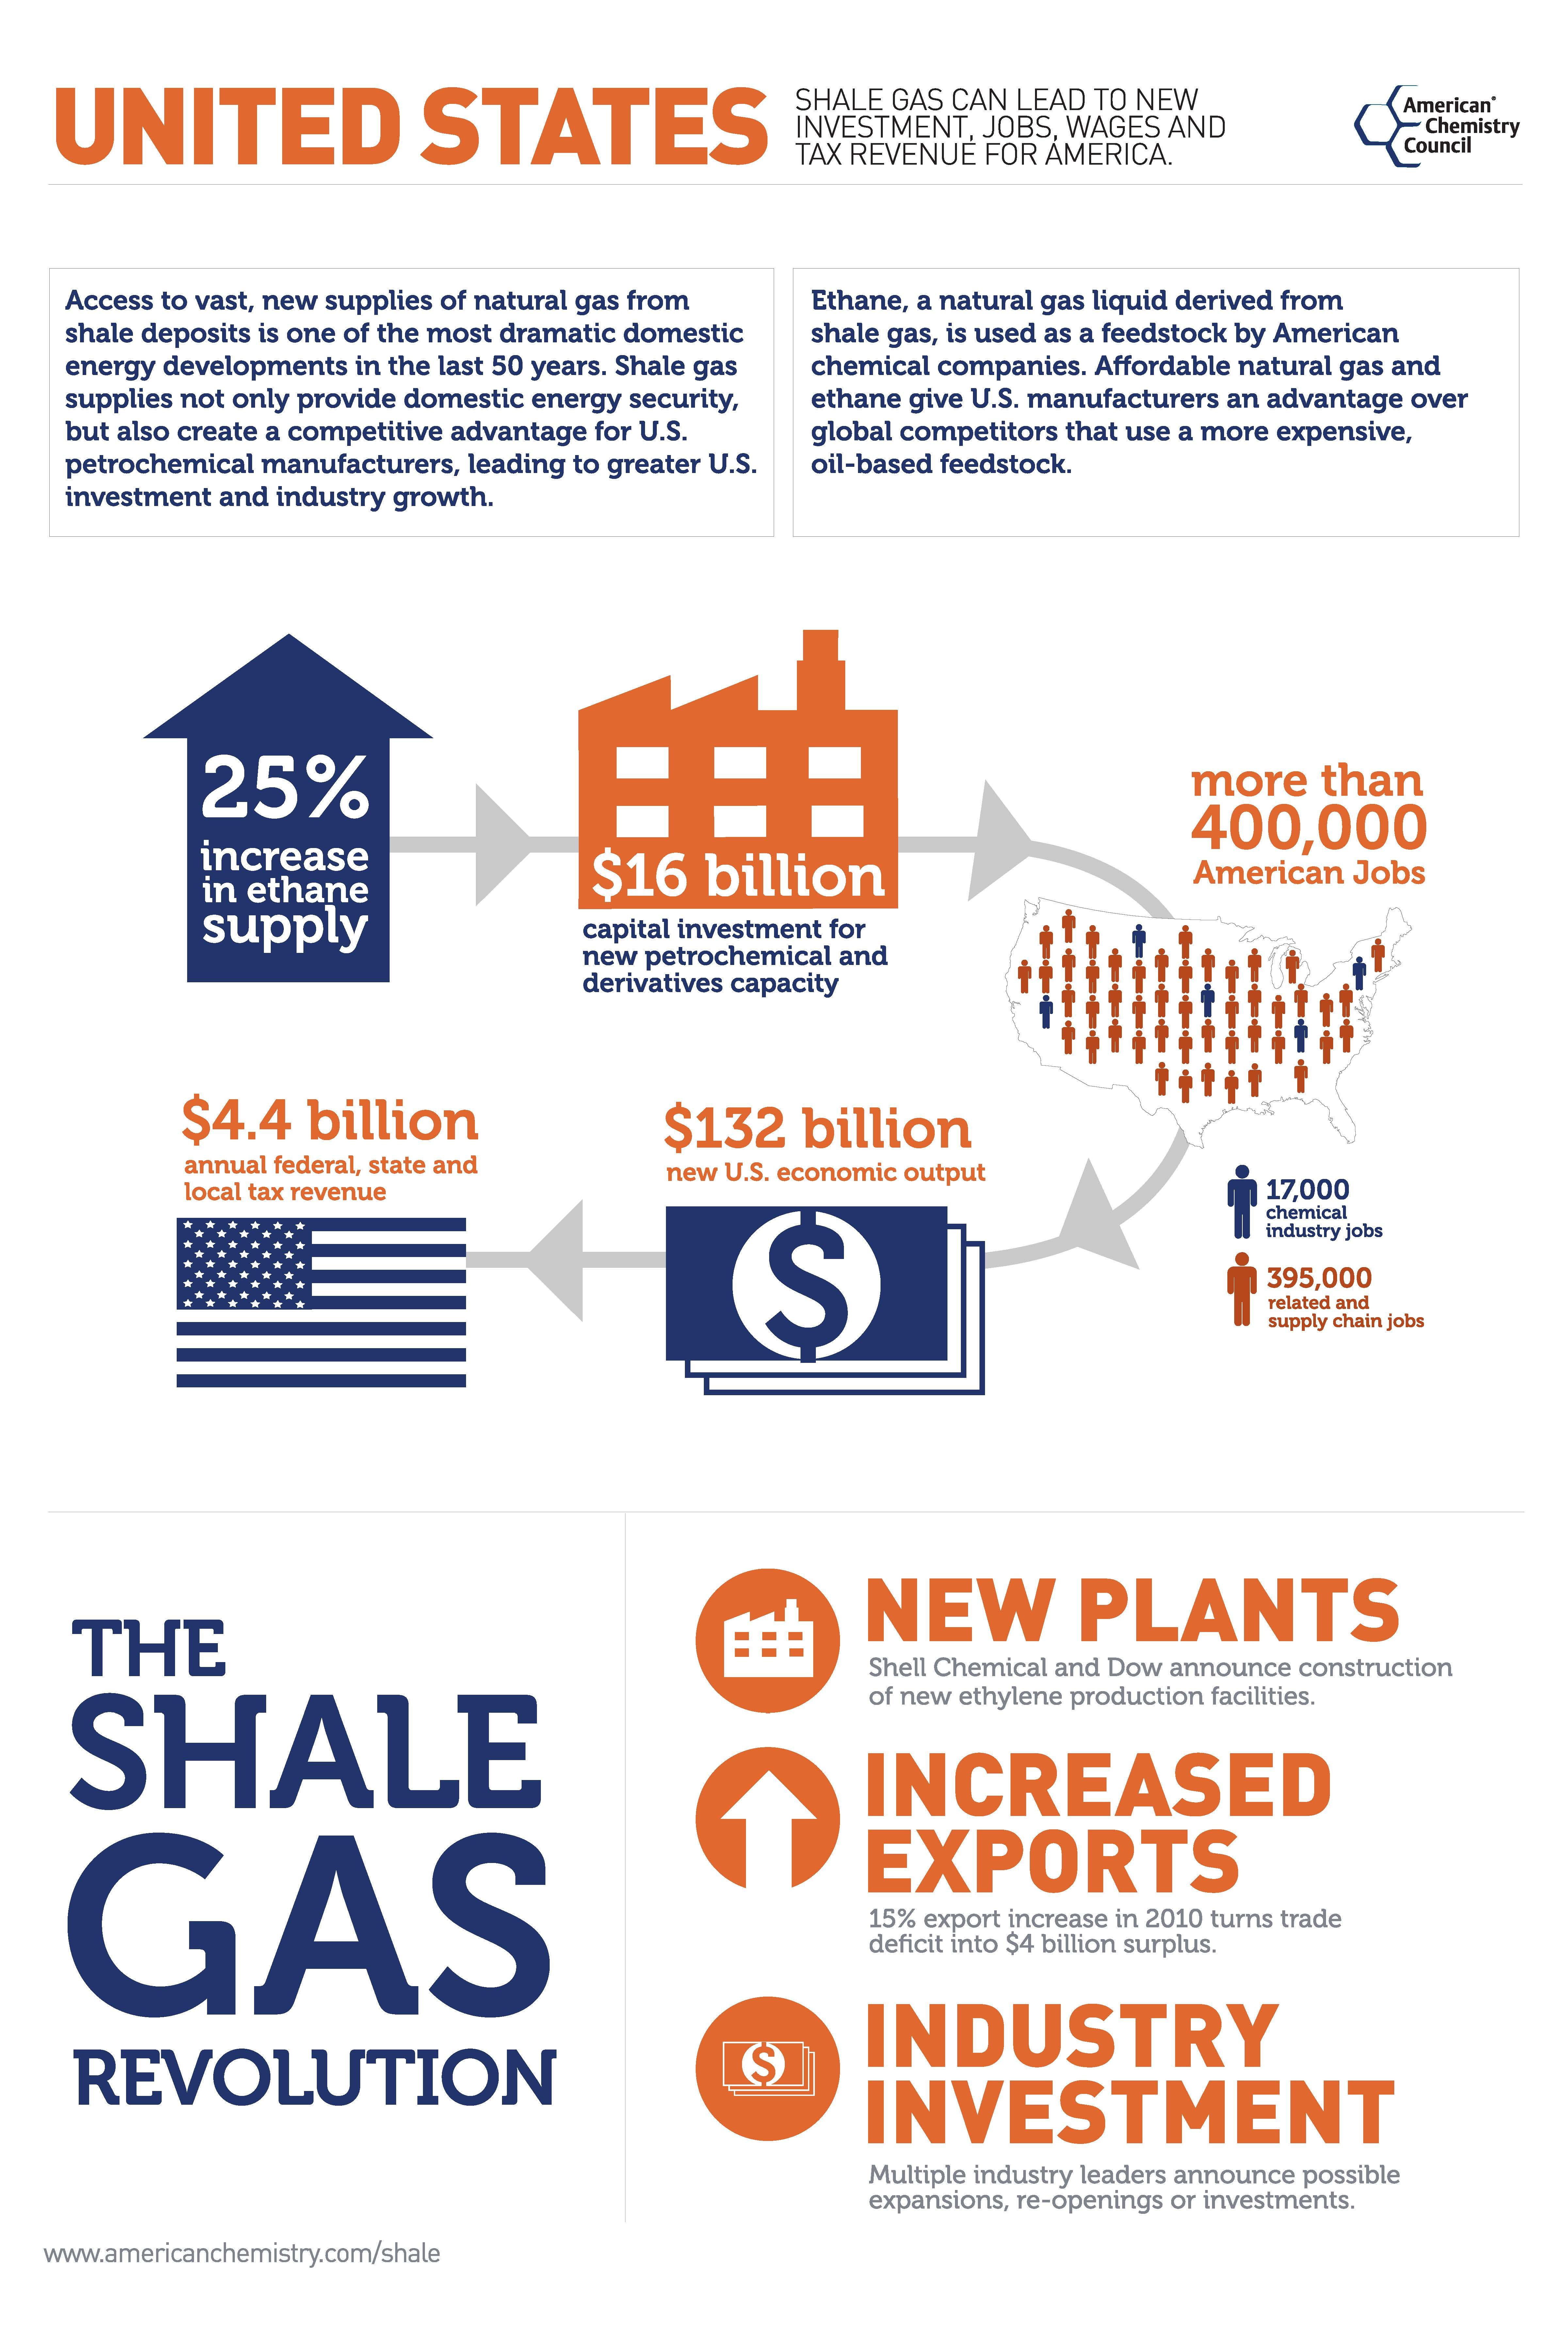 Shale gas revolution in energy